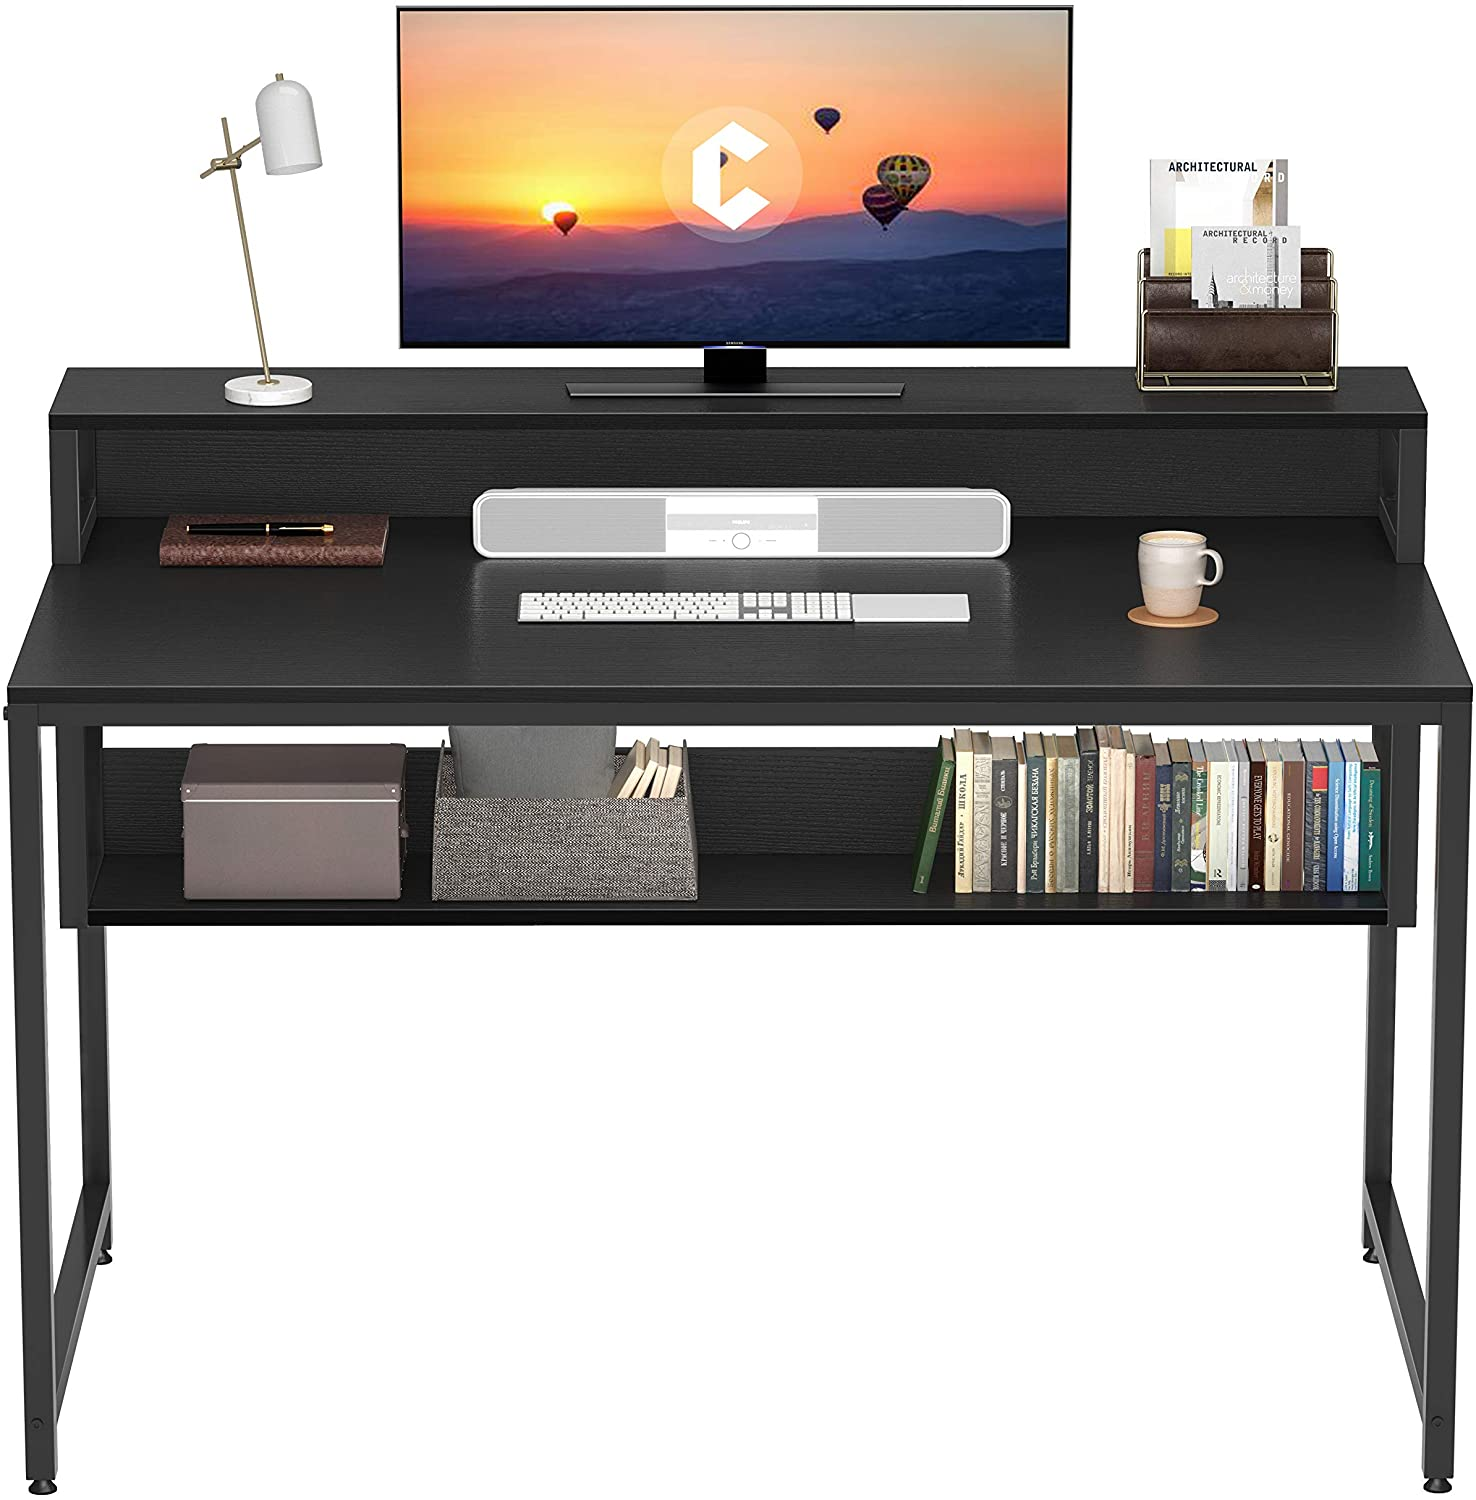 """Cubiker Computer Home Office Desk, 47"""" Small Desk Table with Storage Shelf and Bookshelf, Study Writing Table Modern Simple Style Space Saving Design, Black"""